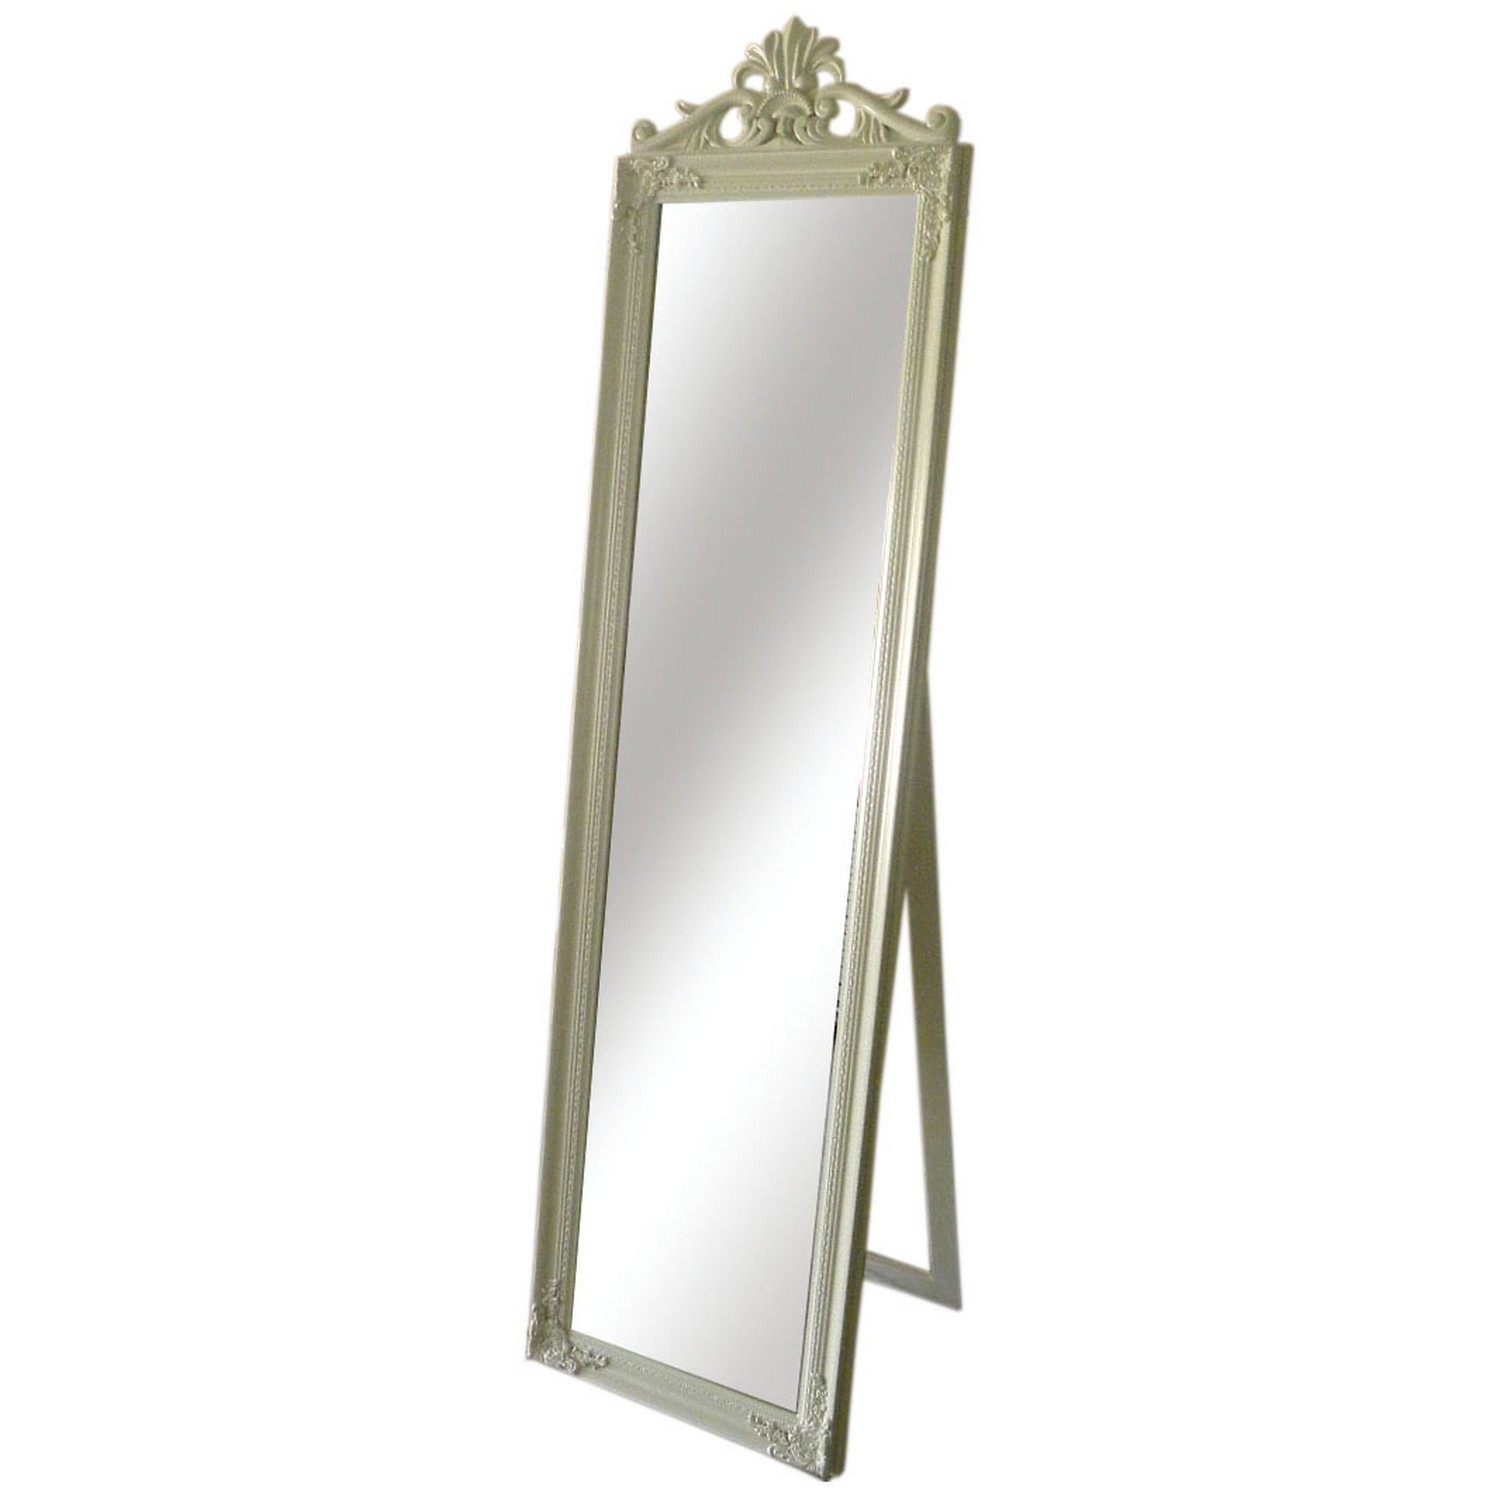 How to decorate standing mirrors best decor things for Cheap mirrors